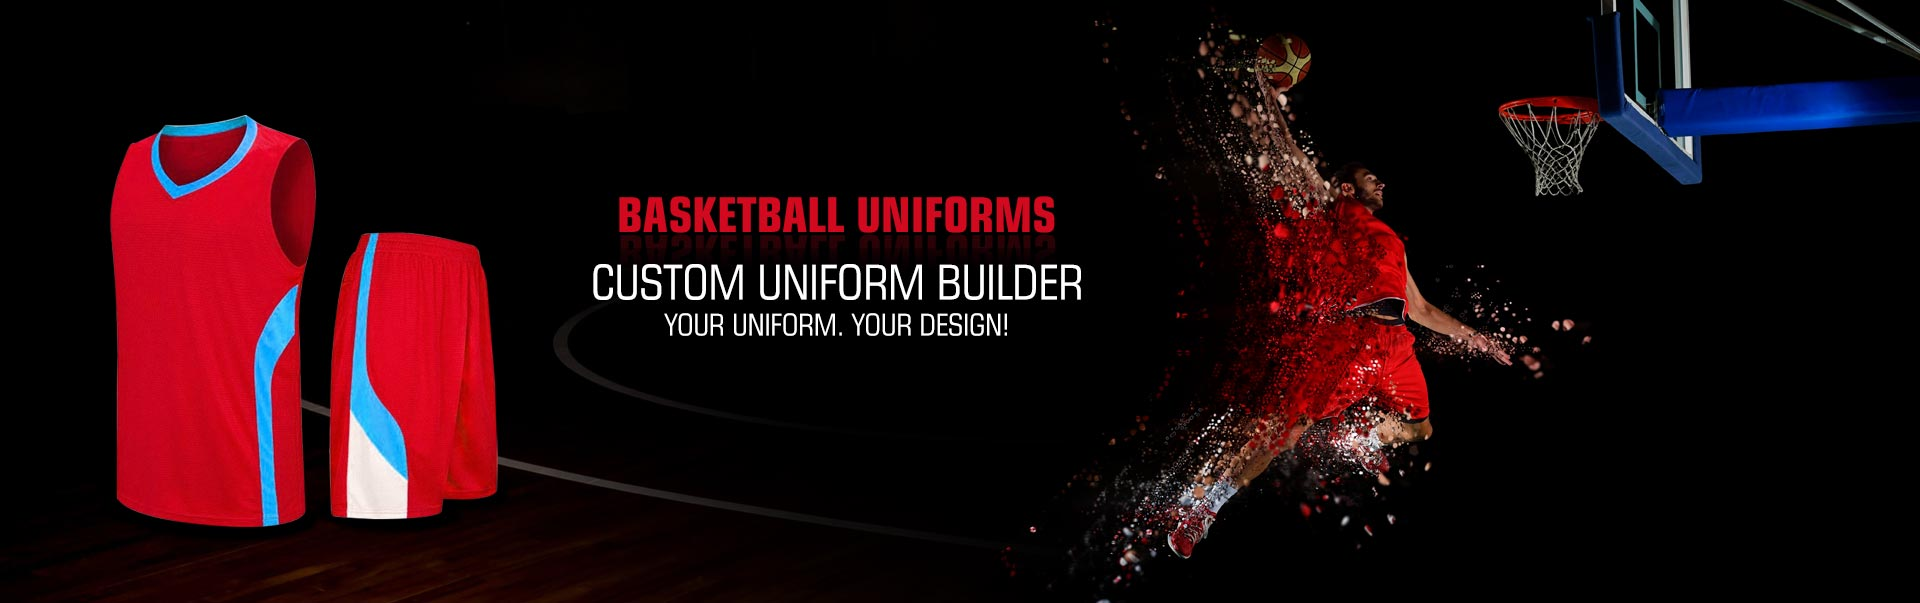 Basketball Uniforms Wholesaler, Suppliers in Leicester